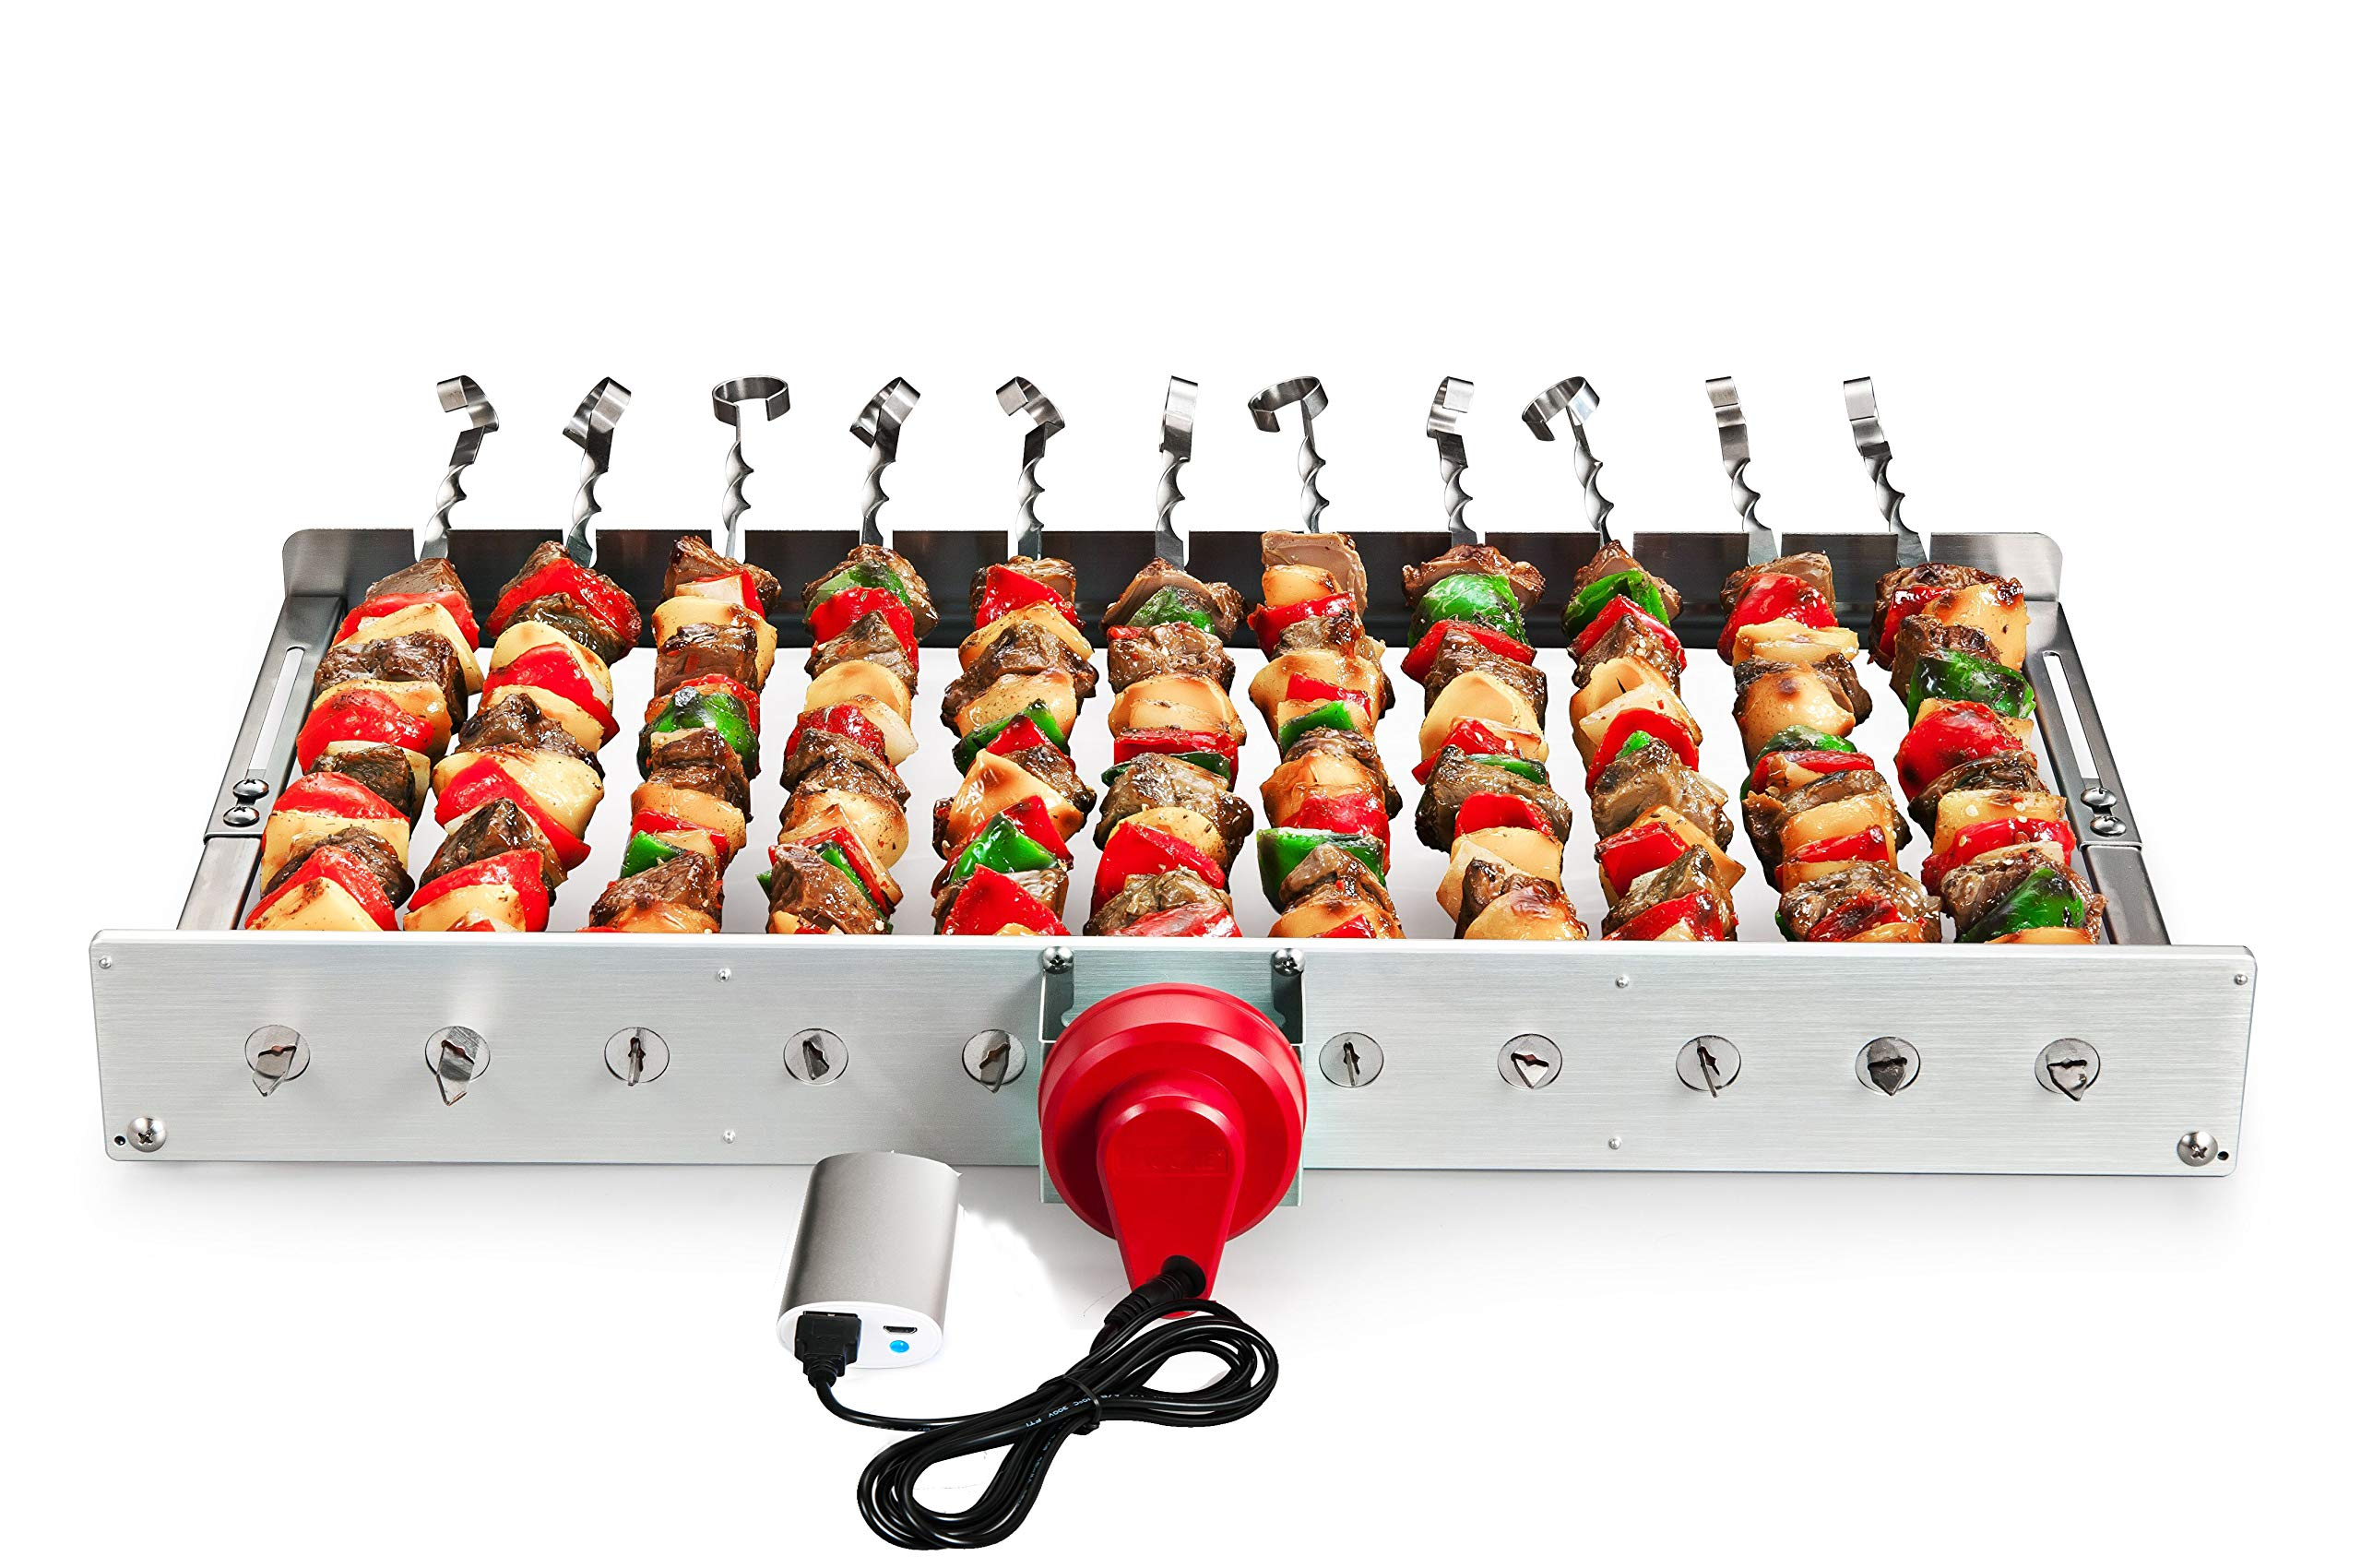 HAOONE Portable Battery Operated Automatic BBQ Grill Rotisserie with 11 Skewers by HAOONE